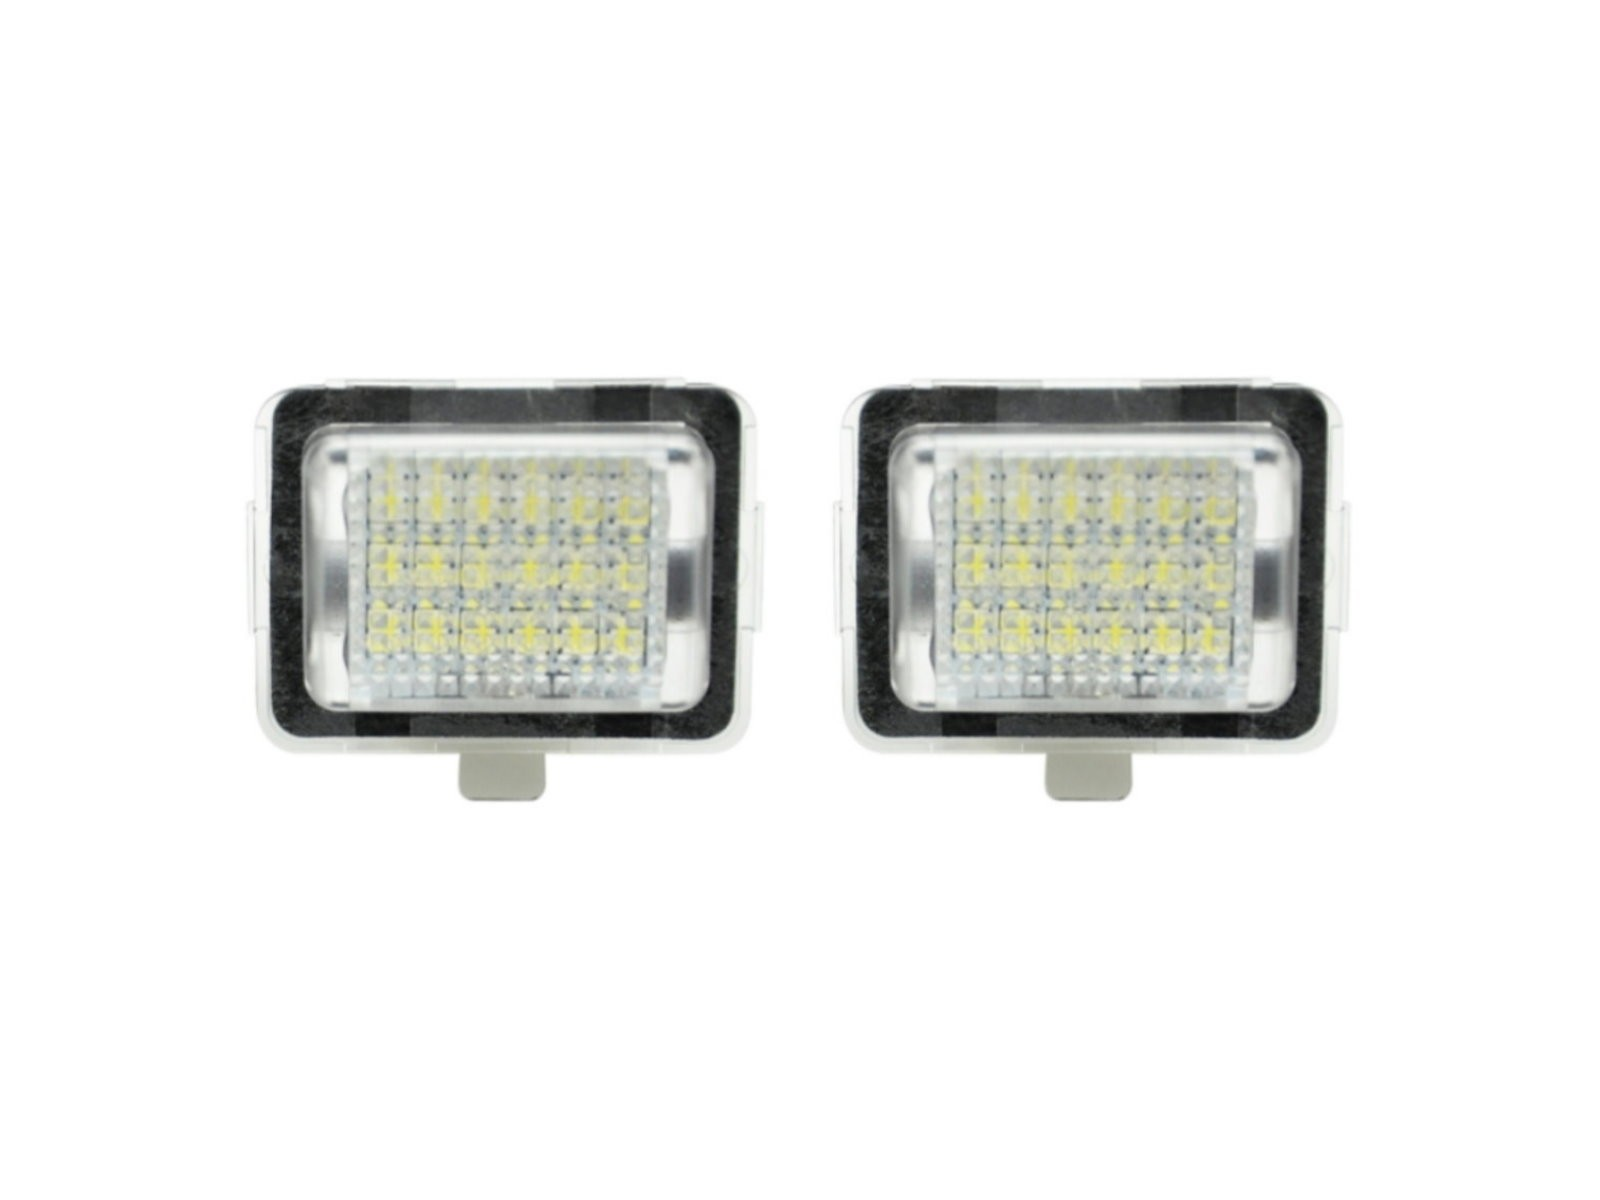 CrazyTheGod E-CLASS C207/A207 Fourth generation 2009-2011 Convertible/Coupe 2D LED License Lamp White for Mercedes-Benz